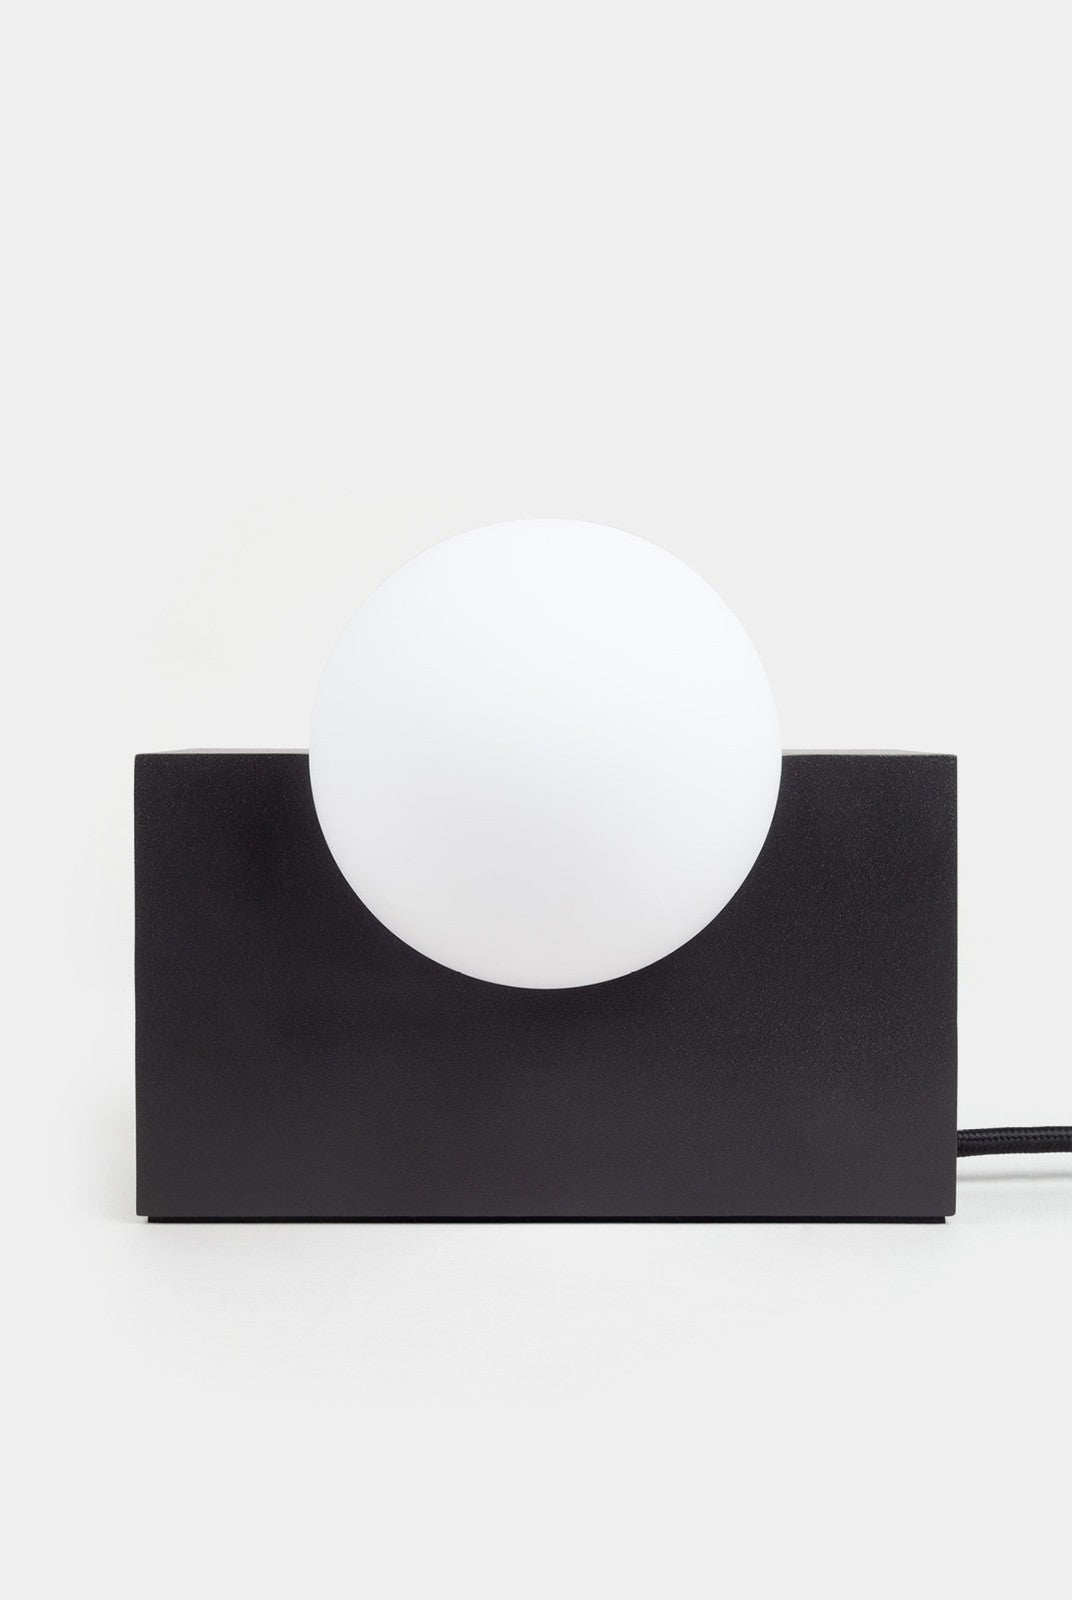 Lamp featuring a black rectangular with a circular globe